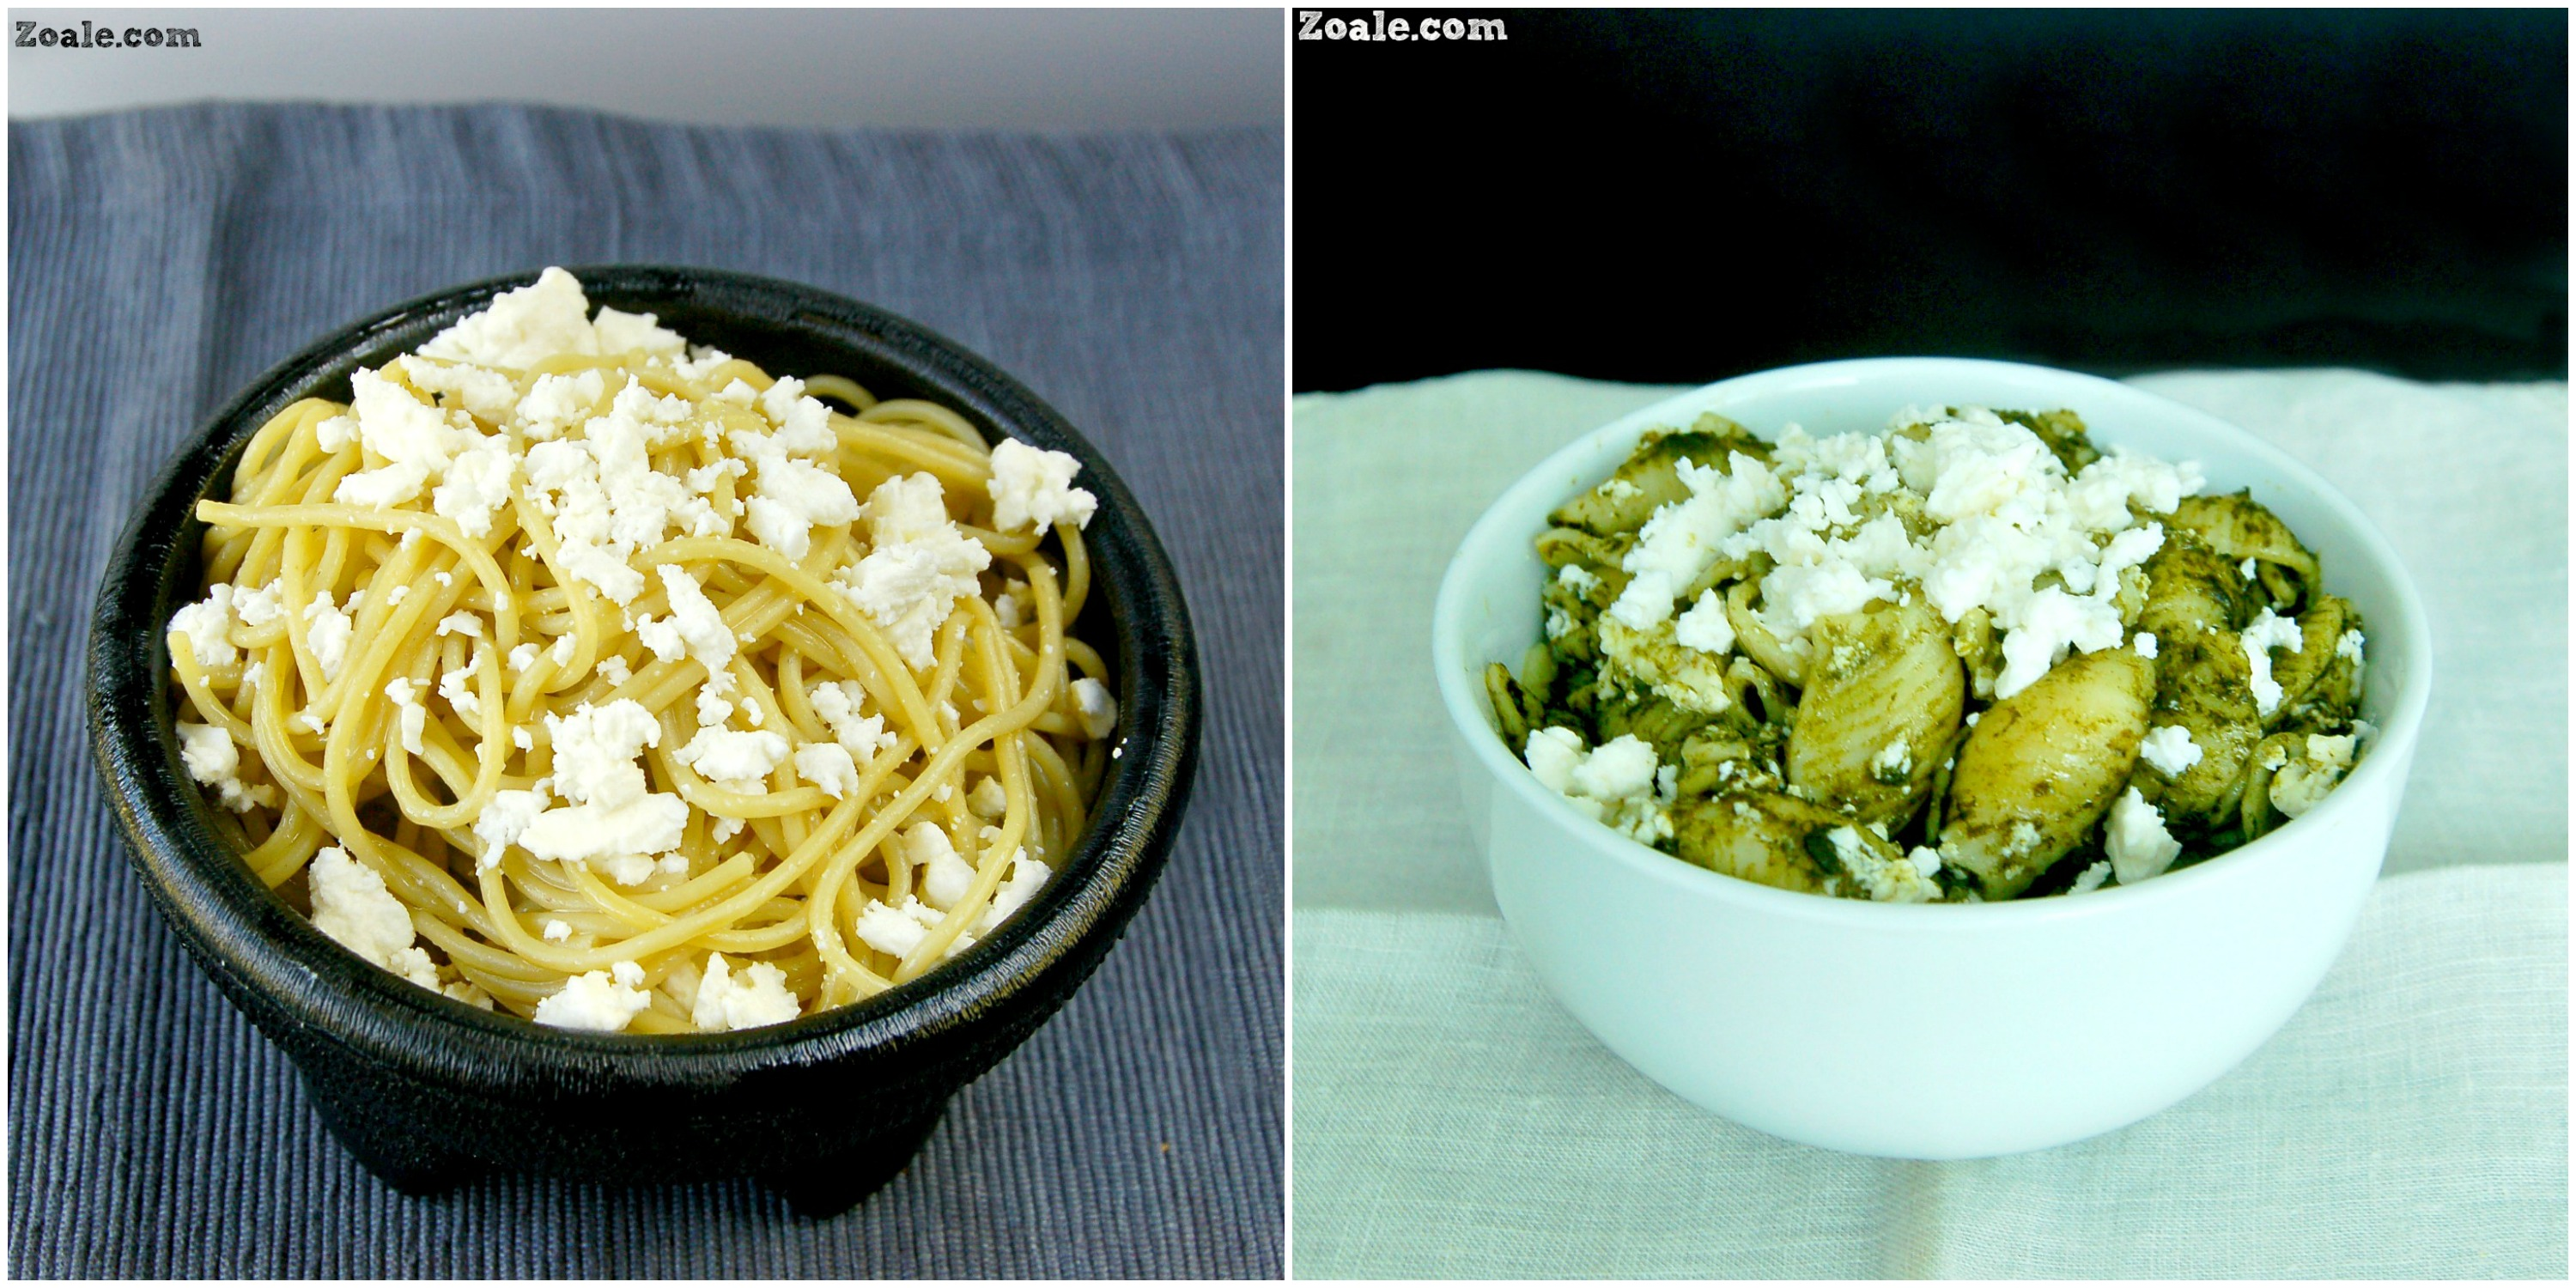 tips for tuesday - freeze pasta